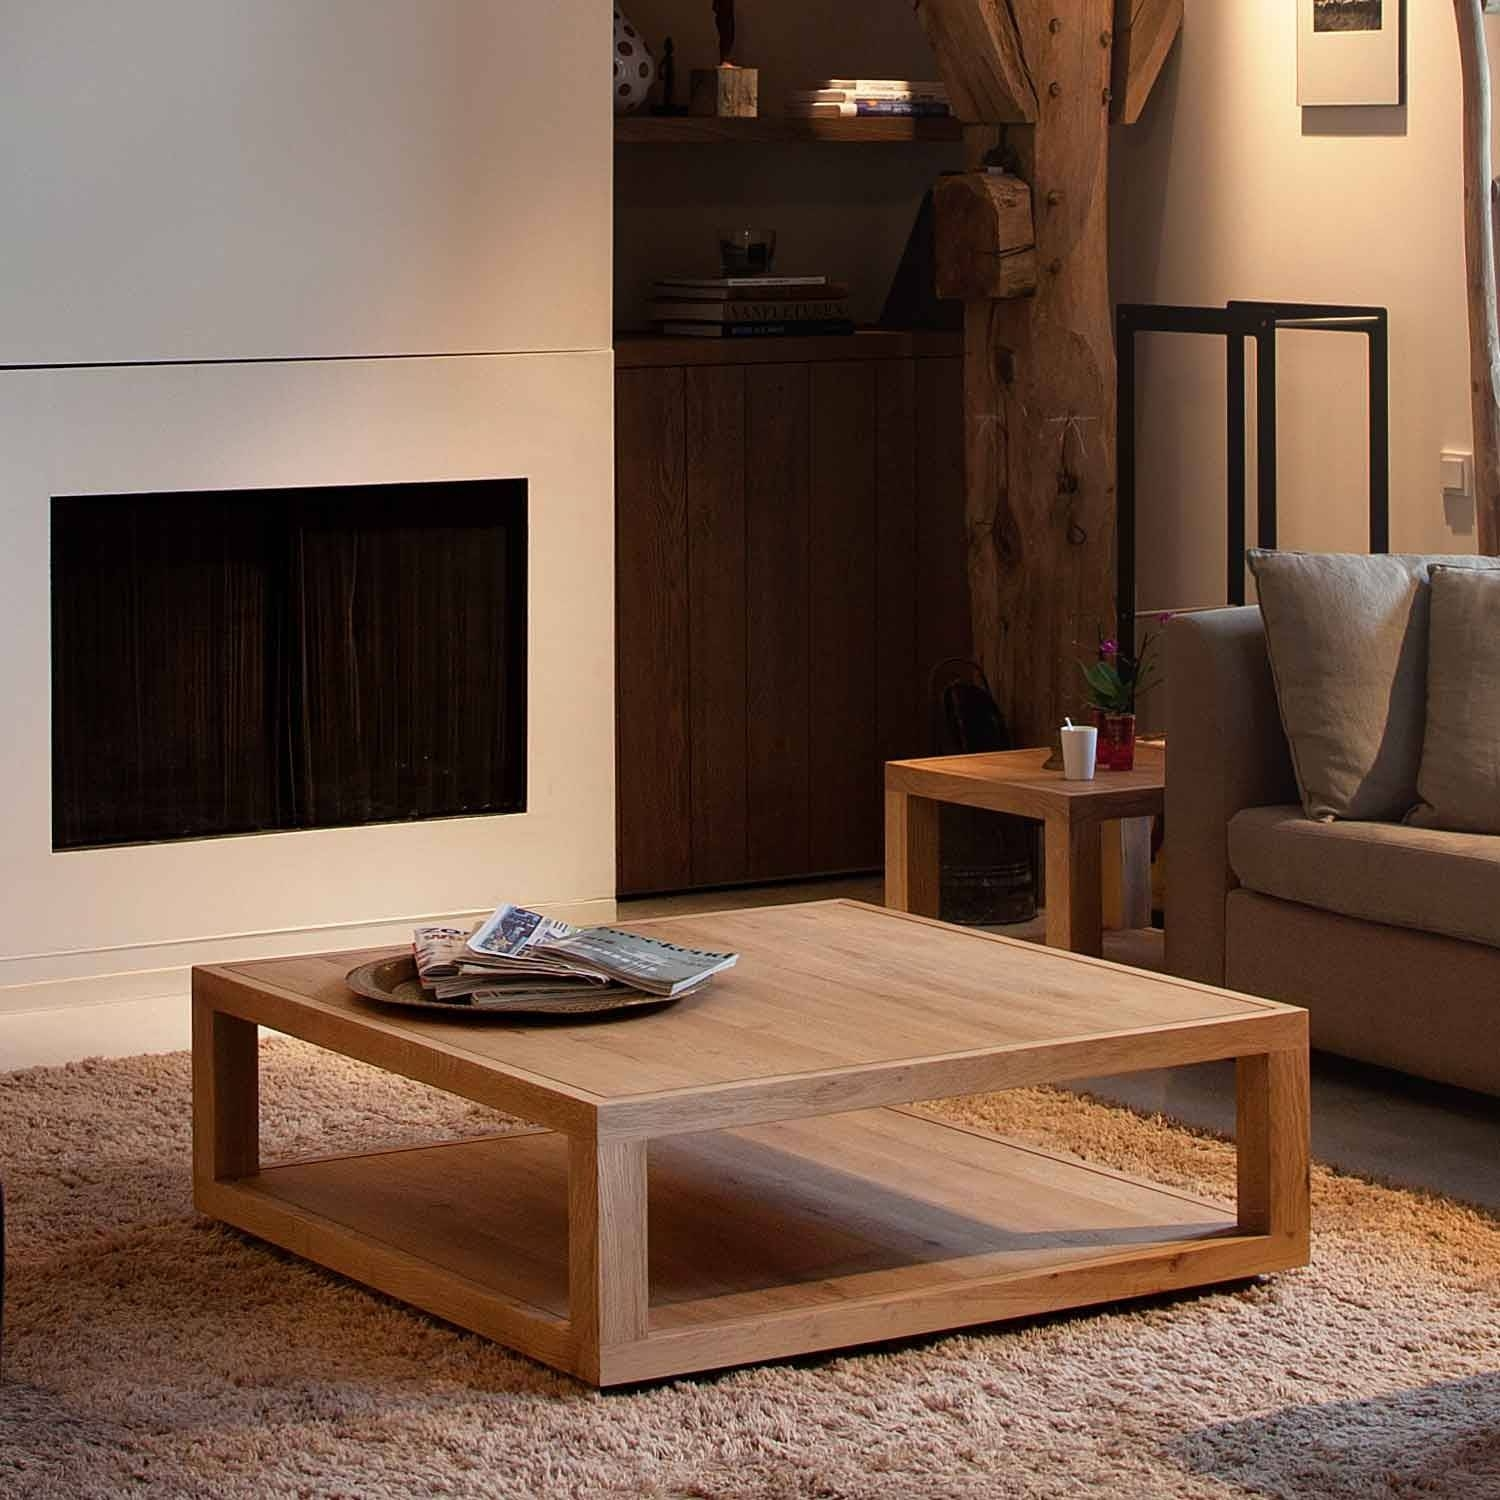 Low Square Coffee Table Wooden | Coffee Tables Decoration Within Large Square Low Coffee Tables (View 9 of 30)